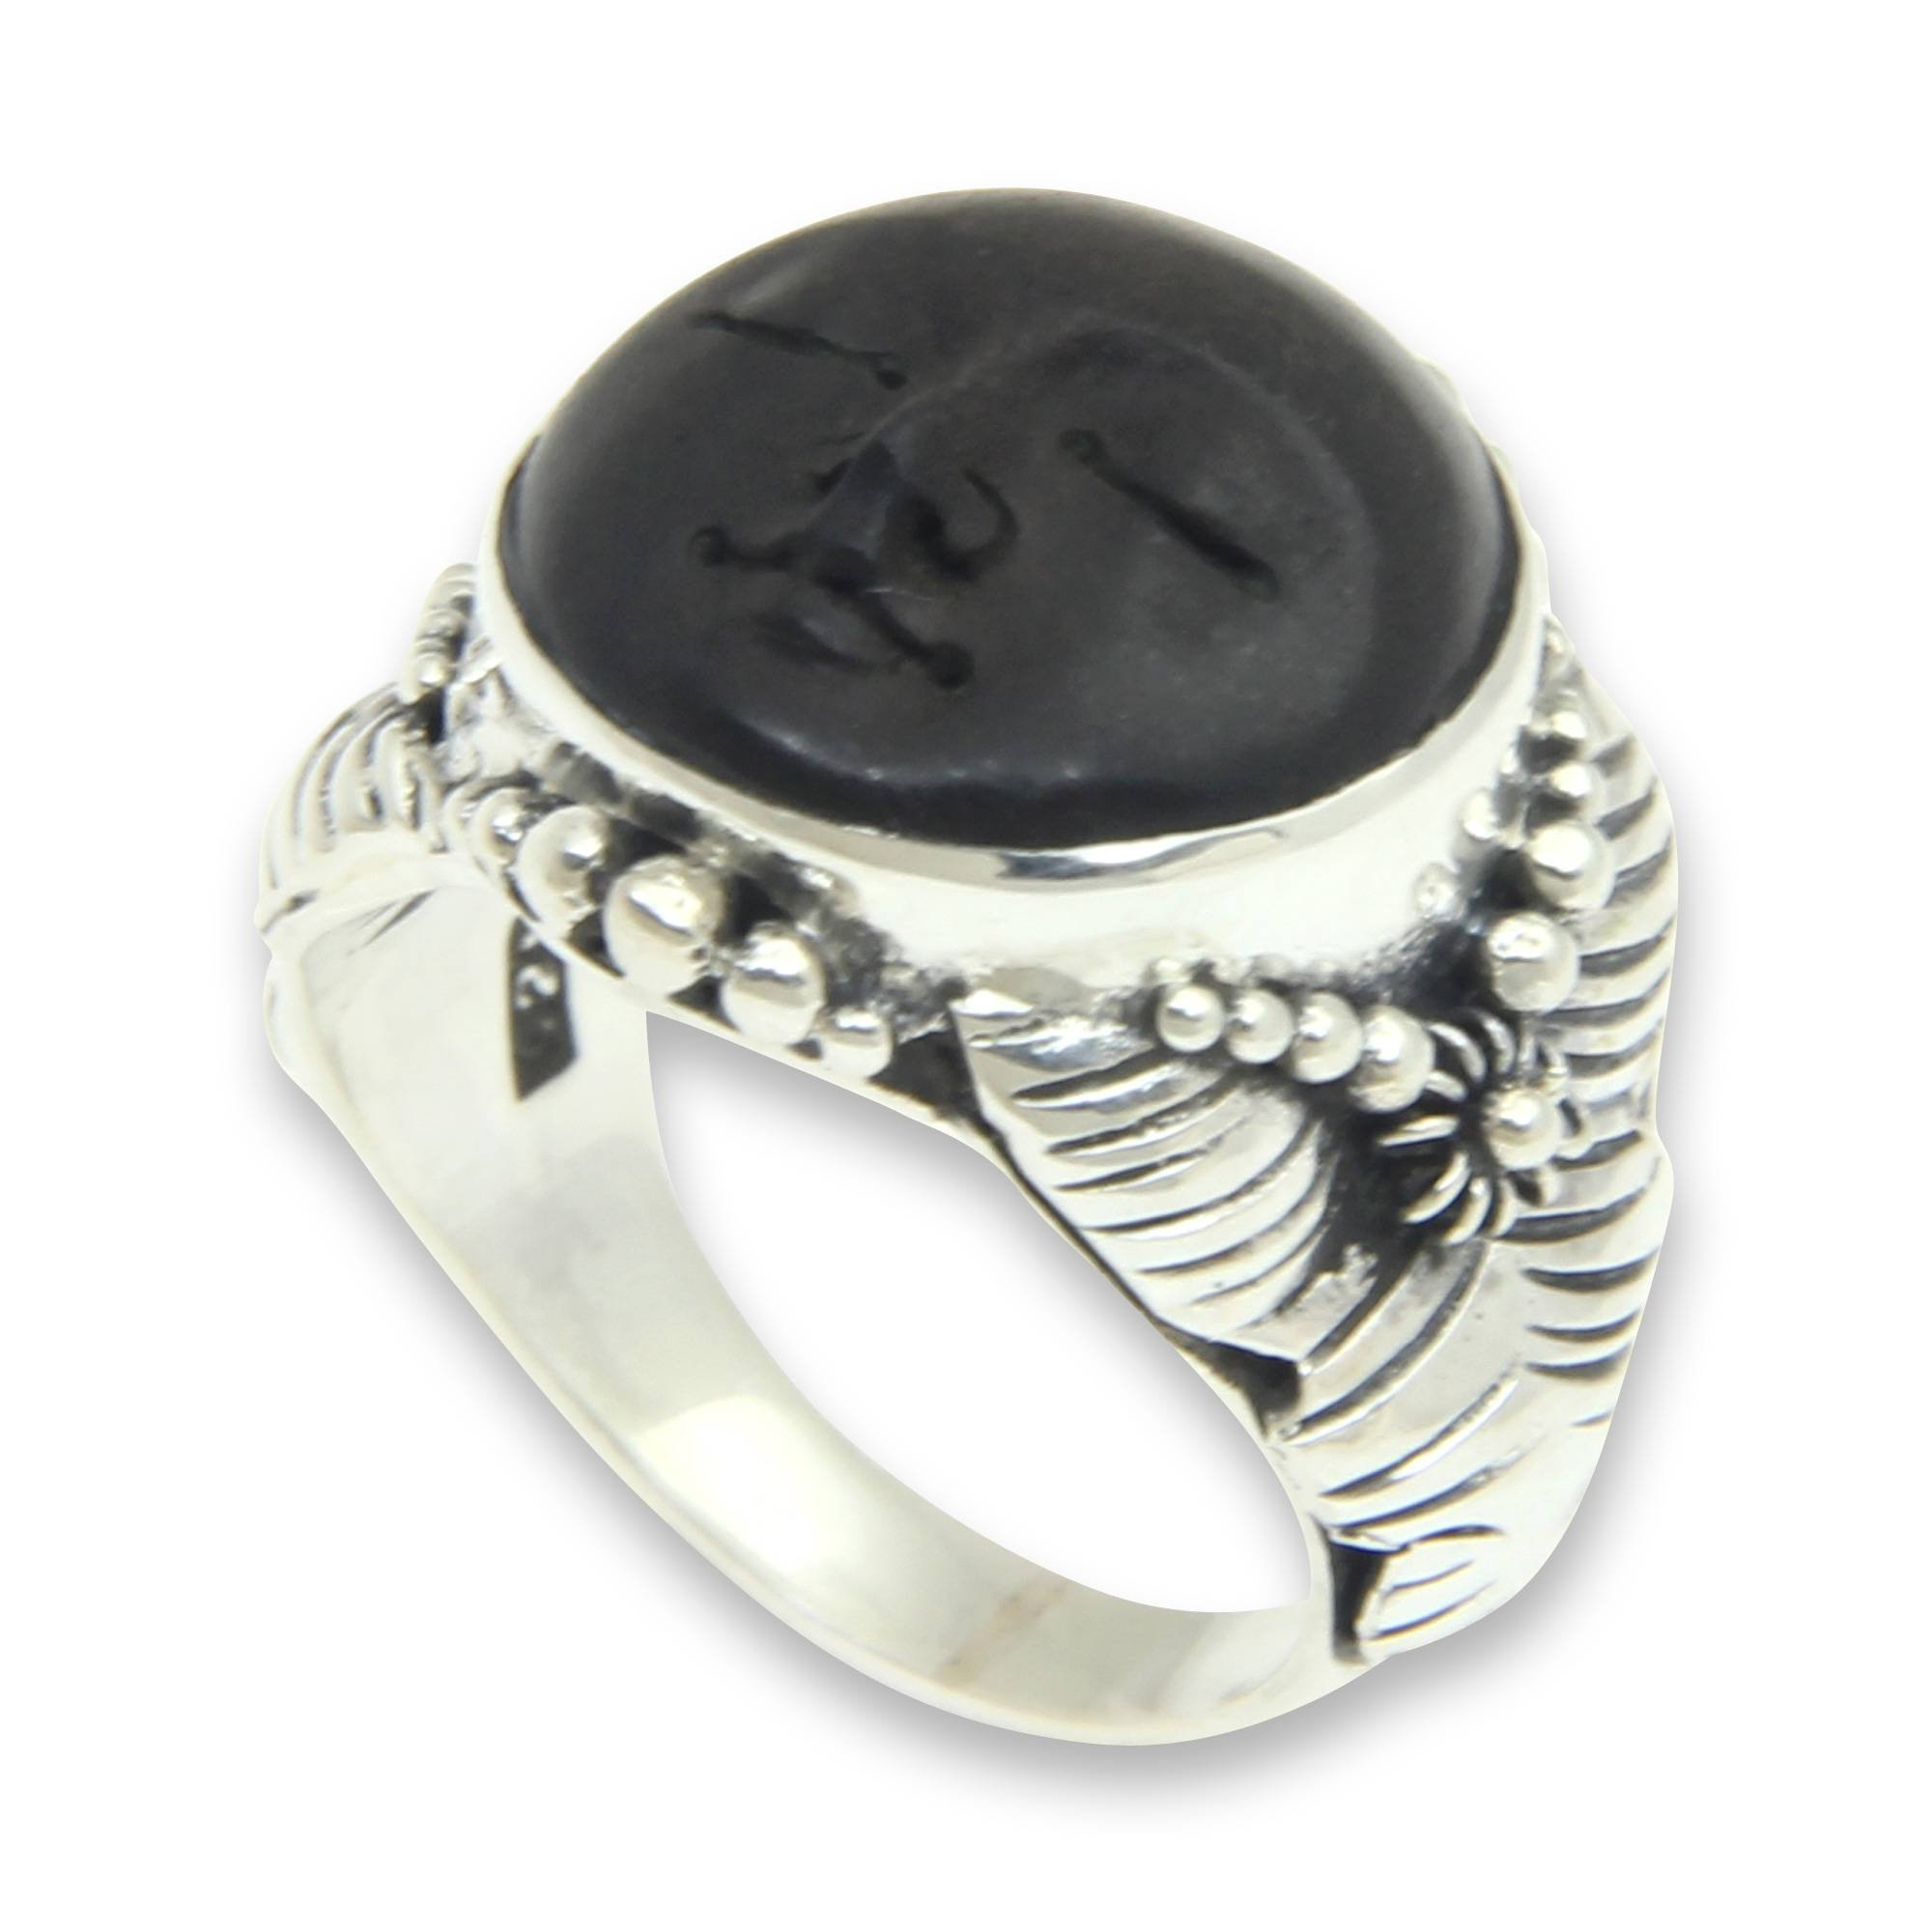 NOVICA .925 Sterling Silver Carved Ebony Wood Ring 'Amun Ra'